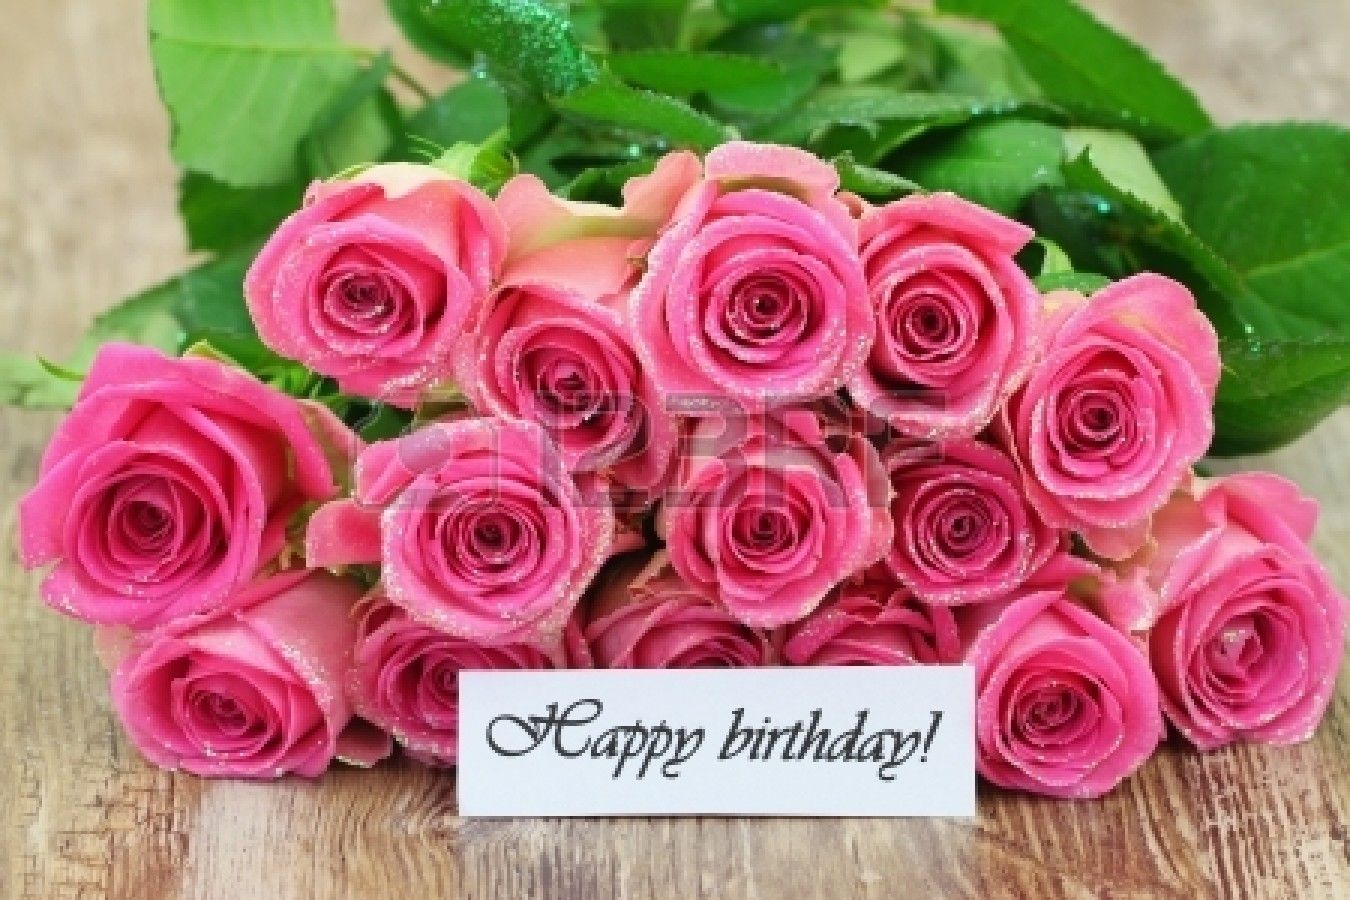 Birthday flowers images quote 1 hd wallpapers valentinescards birthday flowers images quote 1 hd wallpapers valentinescards izmirmasajfo